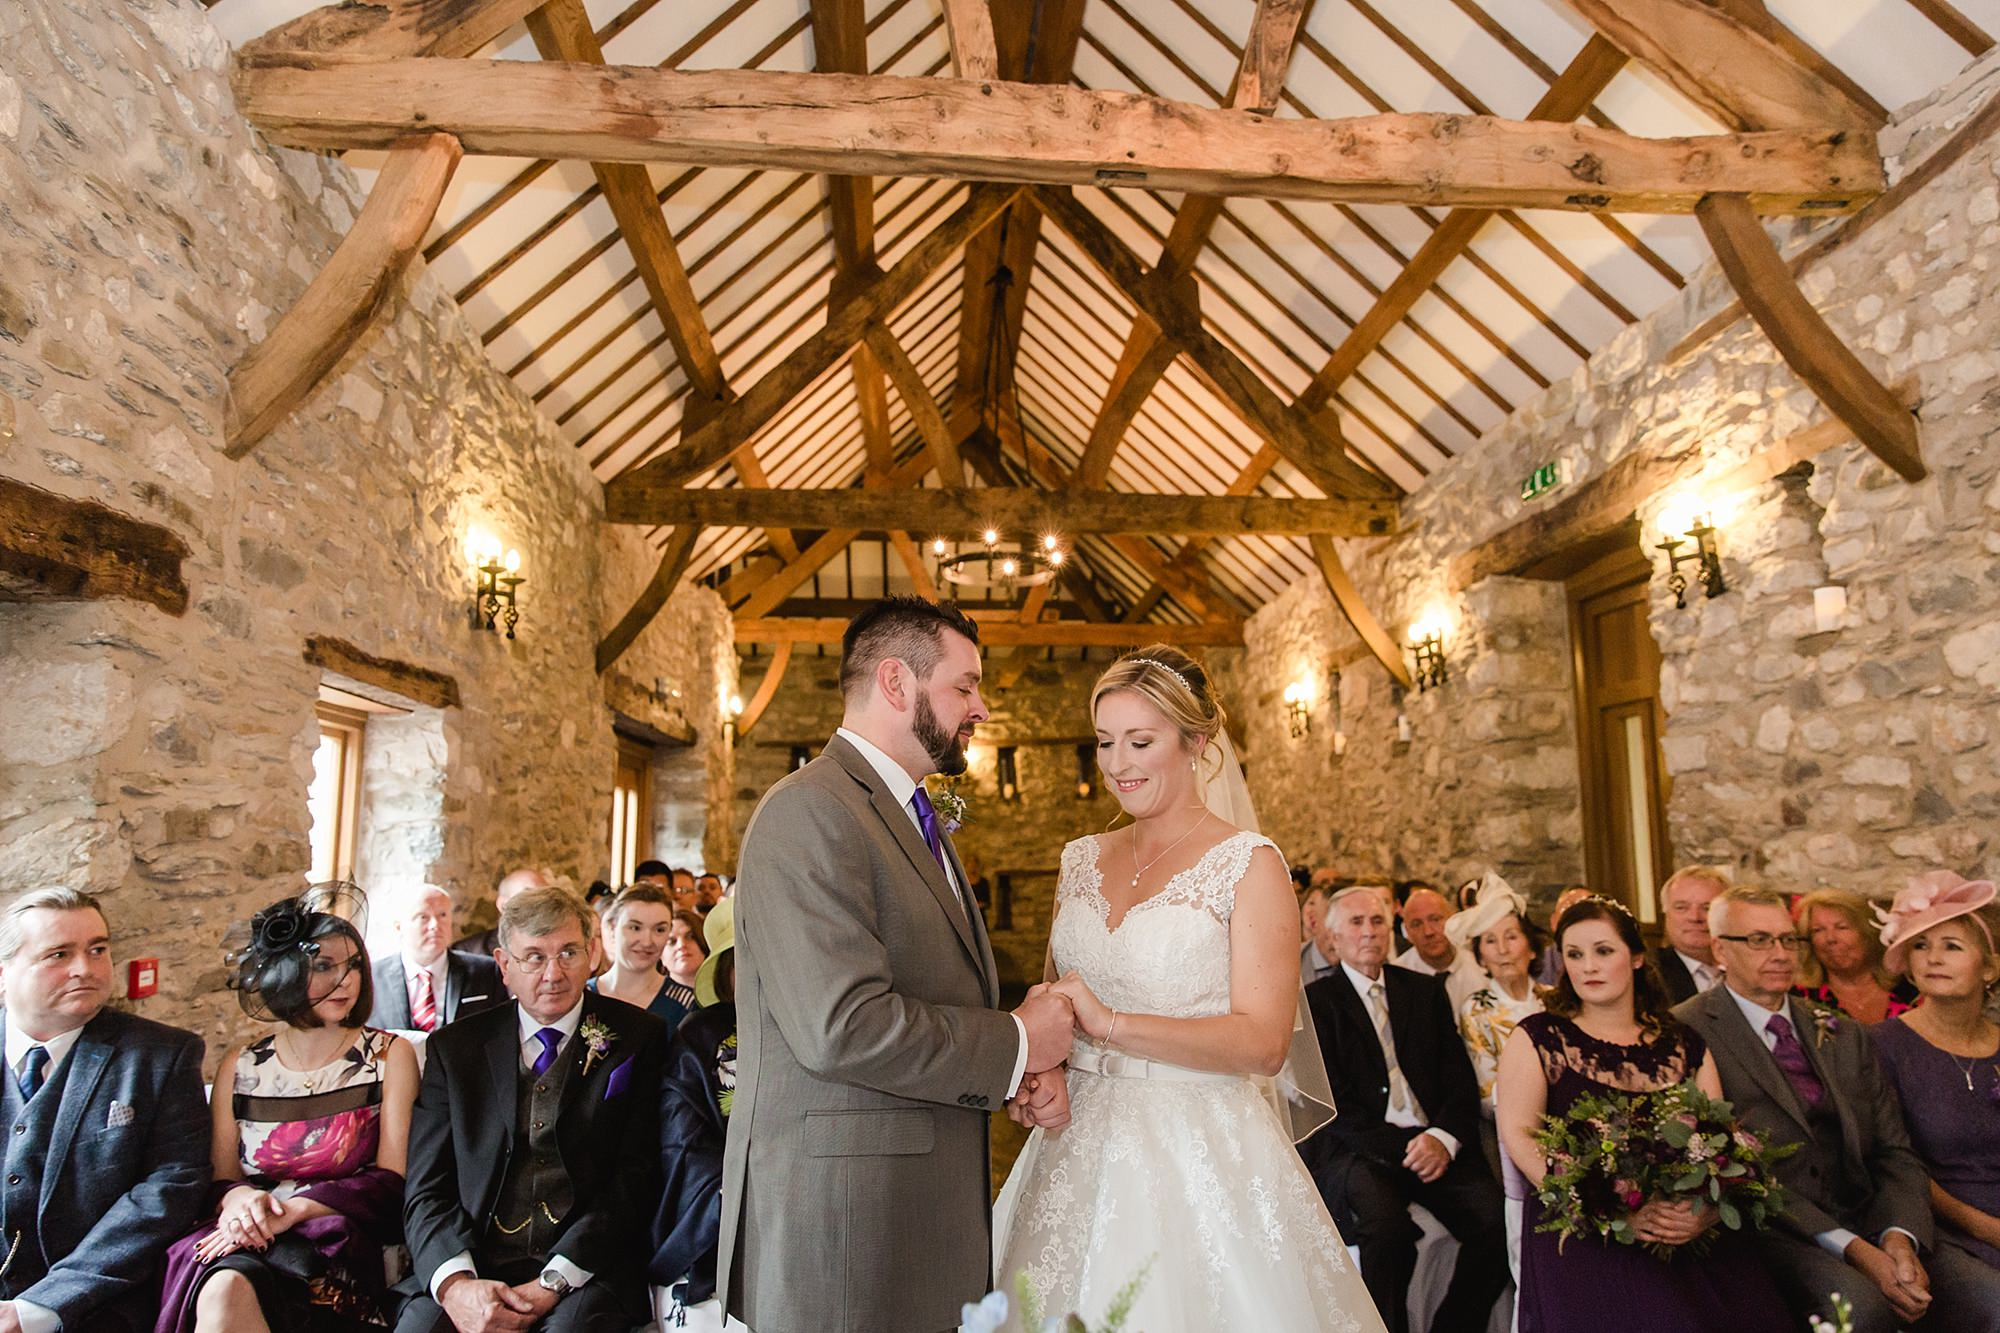 A fun wedding at Plas Isaf - bride and groom exchange rings